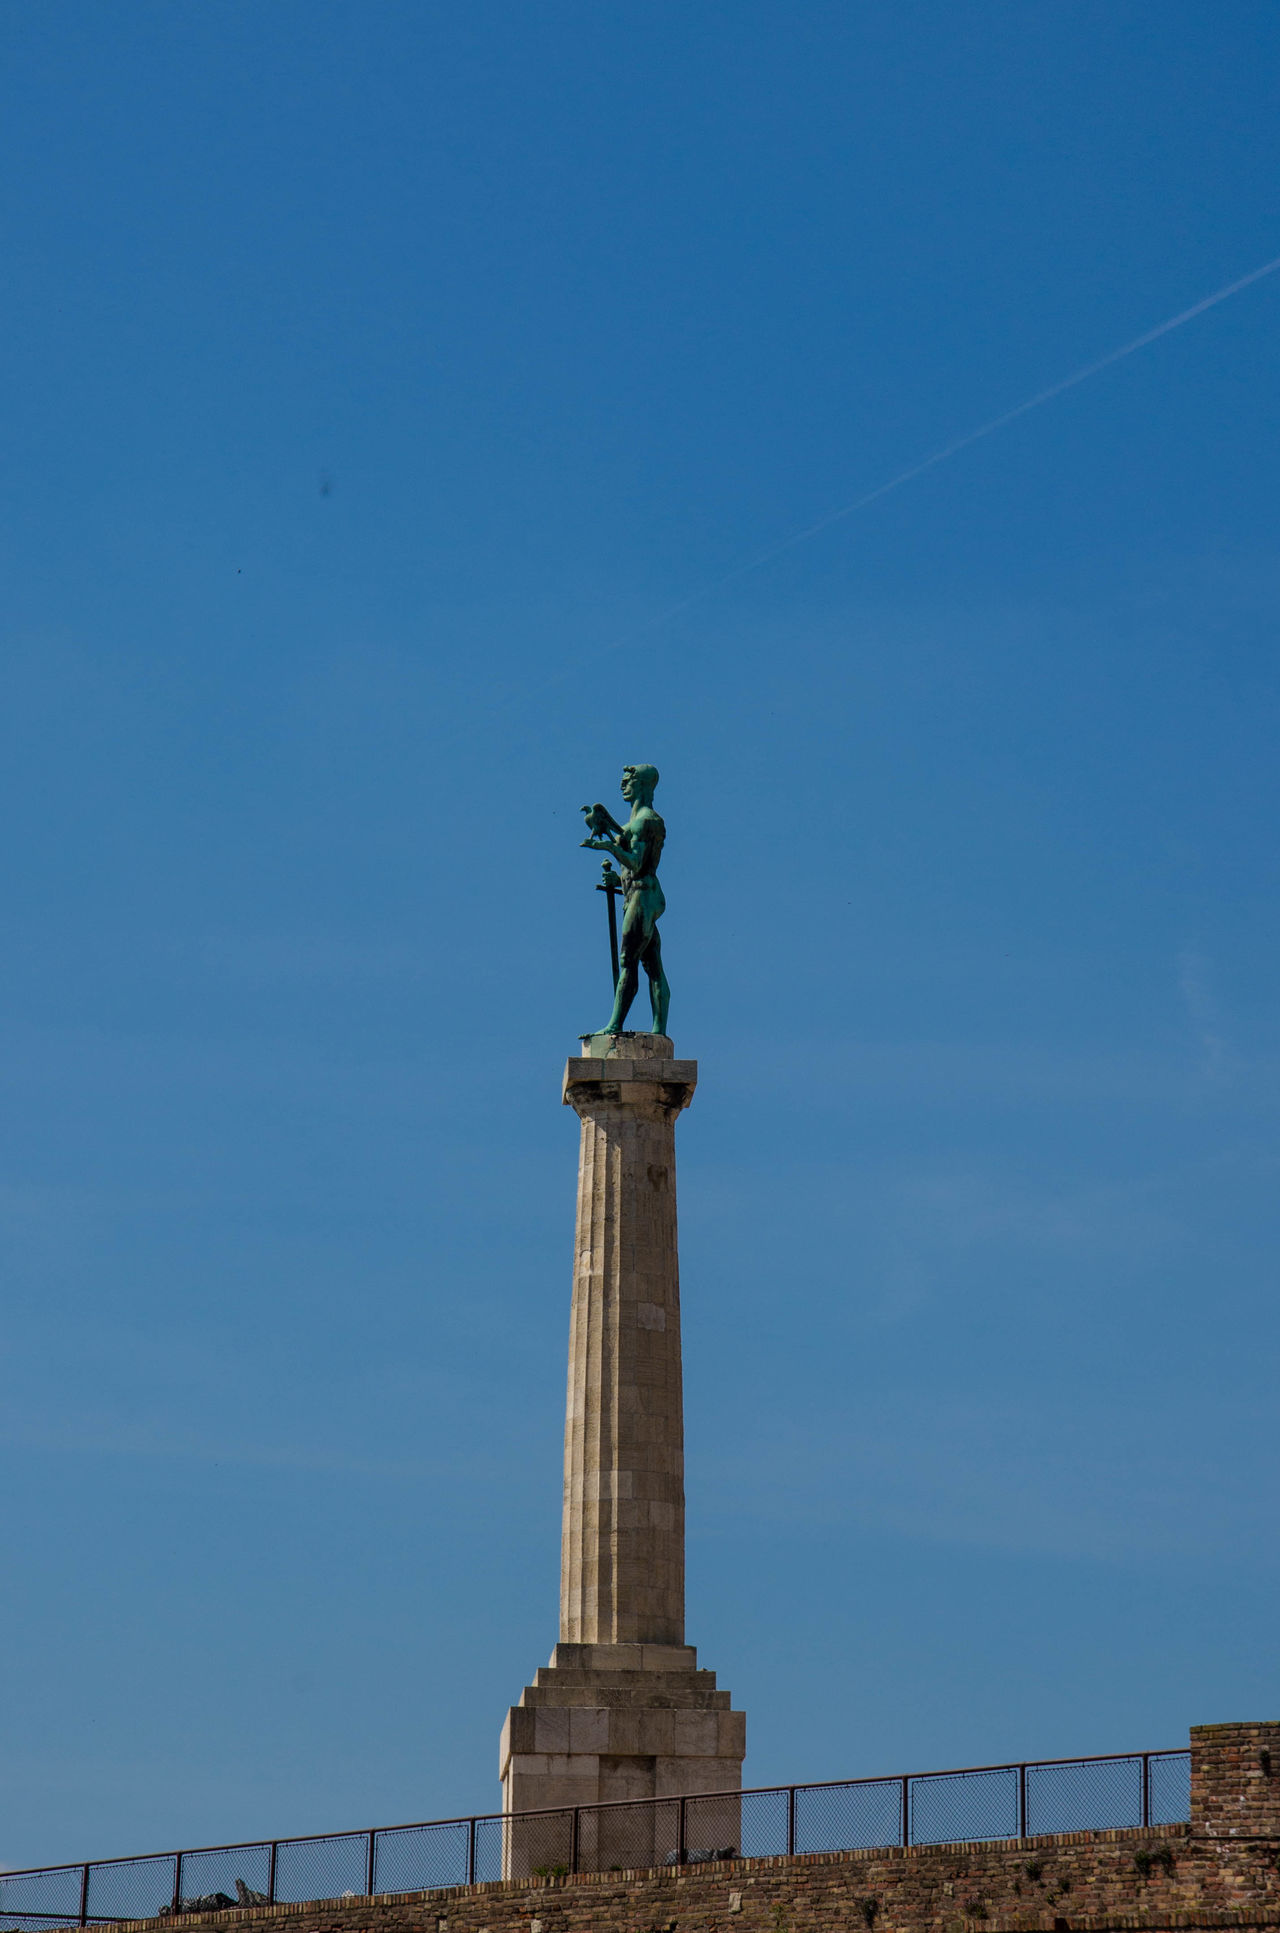 Architecture Blue Blue Sky Clear Sky Clear Sky Day Man Monument No People Outdoors Sculpture Sky Statue Statue Travel Destinations Victory Victory Monument Winner Ww1 Ww2 WWII My Year My View Liberty Statues Statues And Monuments